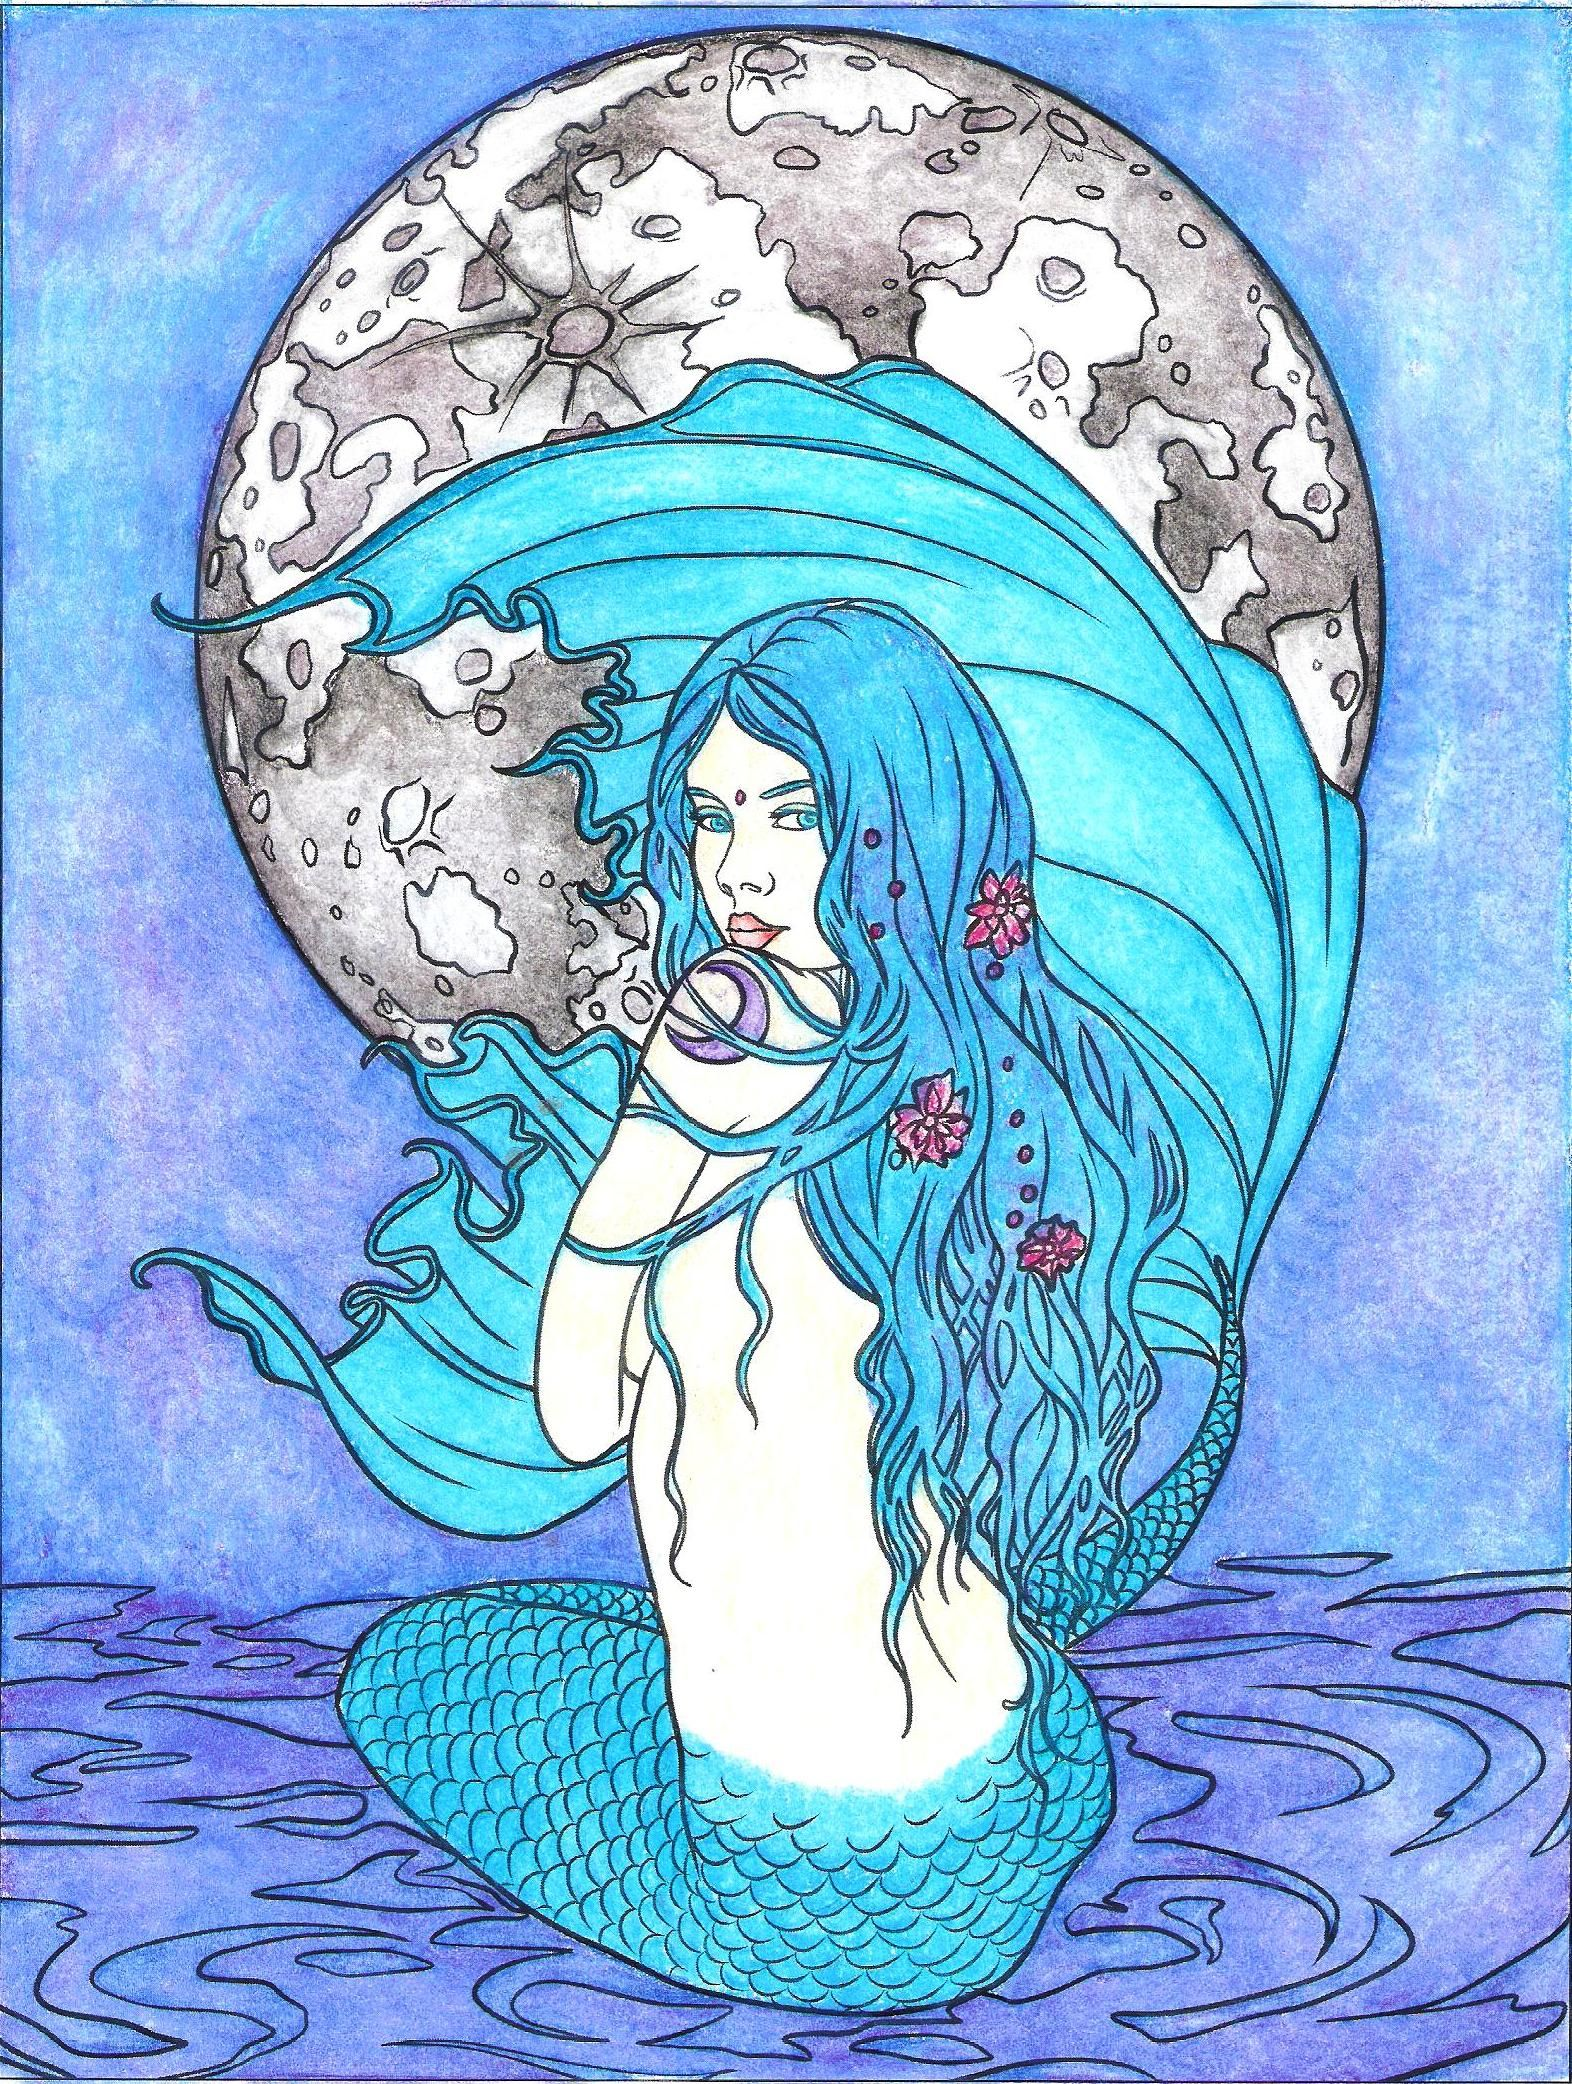 Fairy art coloring book by selina fenech - Moon Mermaid From Mermaid Coloring Book By Selina Fenech Colorselina